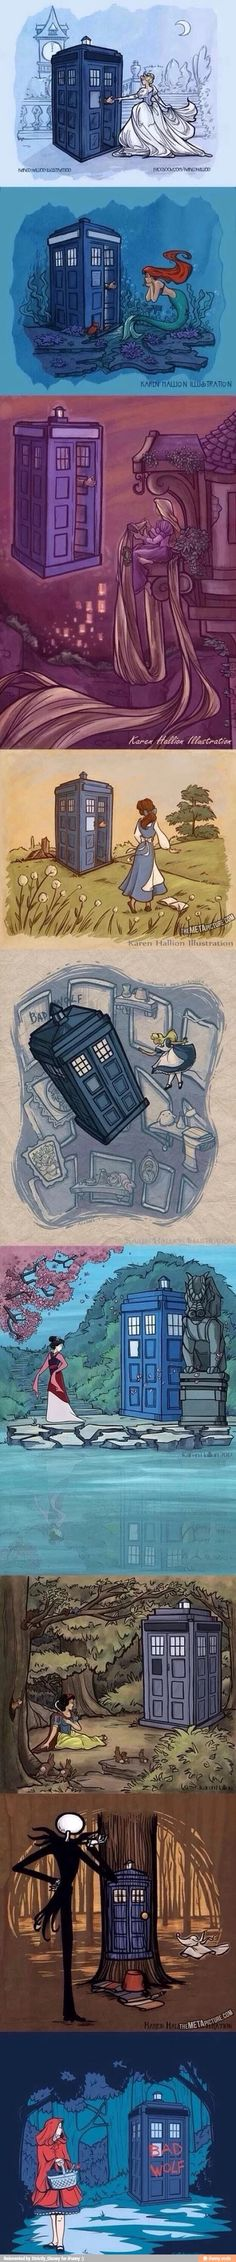 Doctor who and Disney princesses.